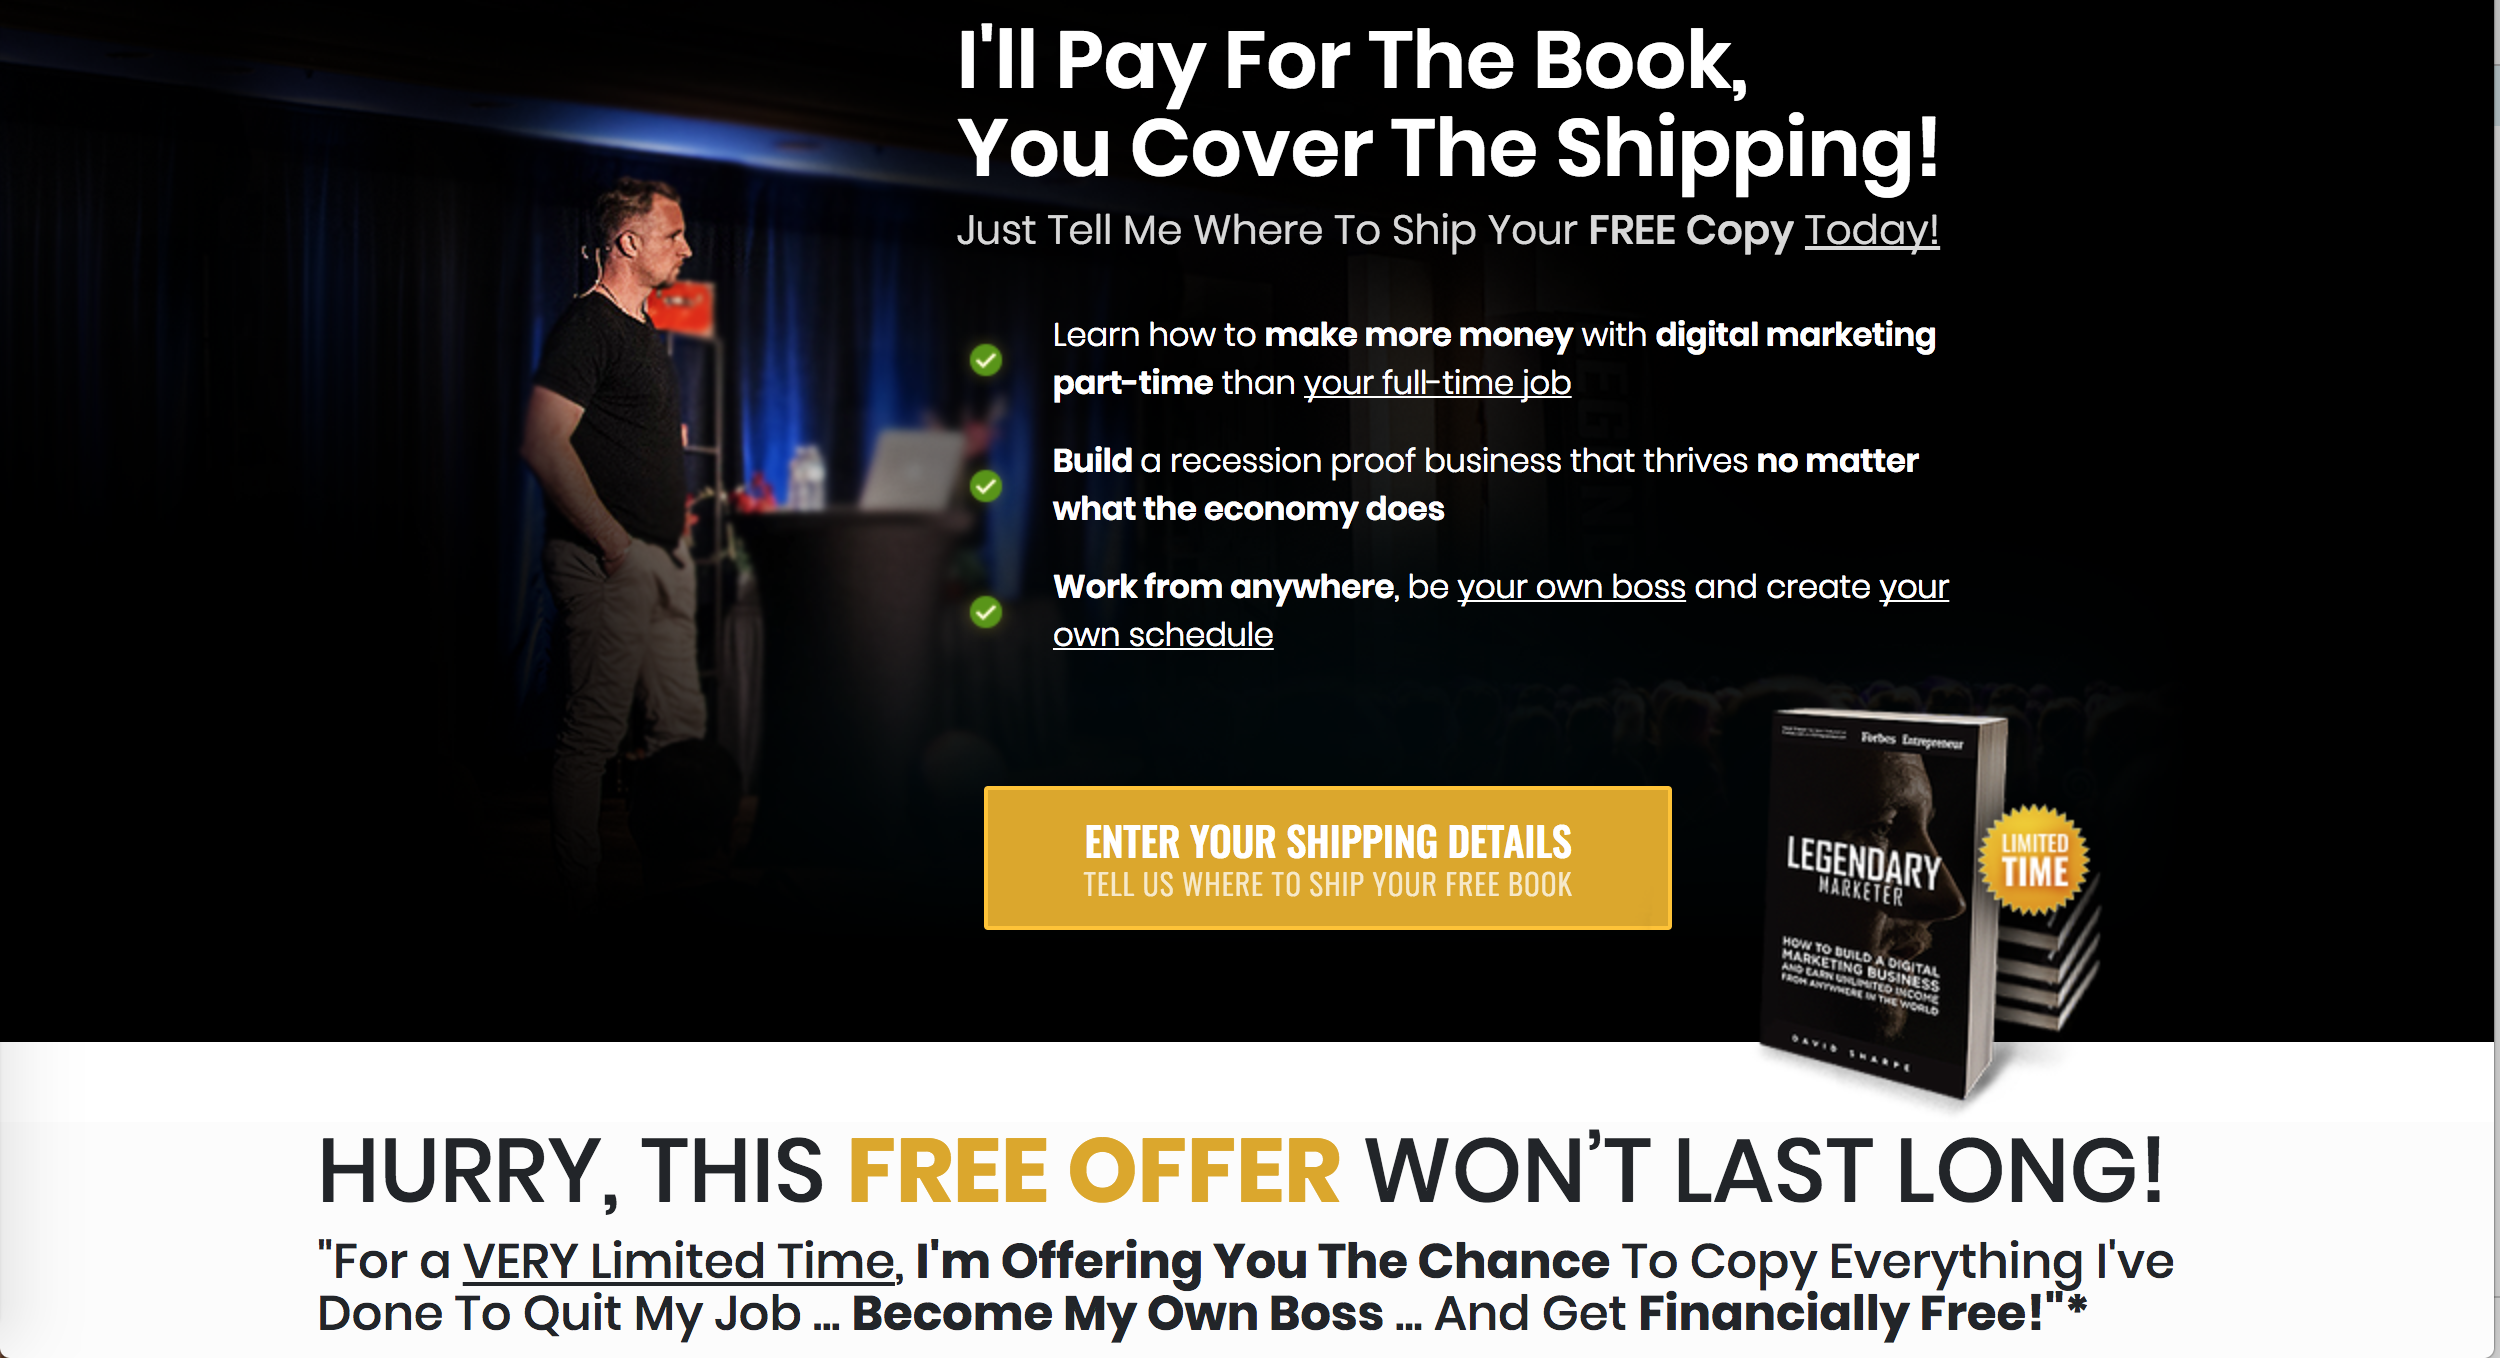 Legendary Marketer Full Price  Internet Marketing Program Store